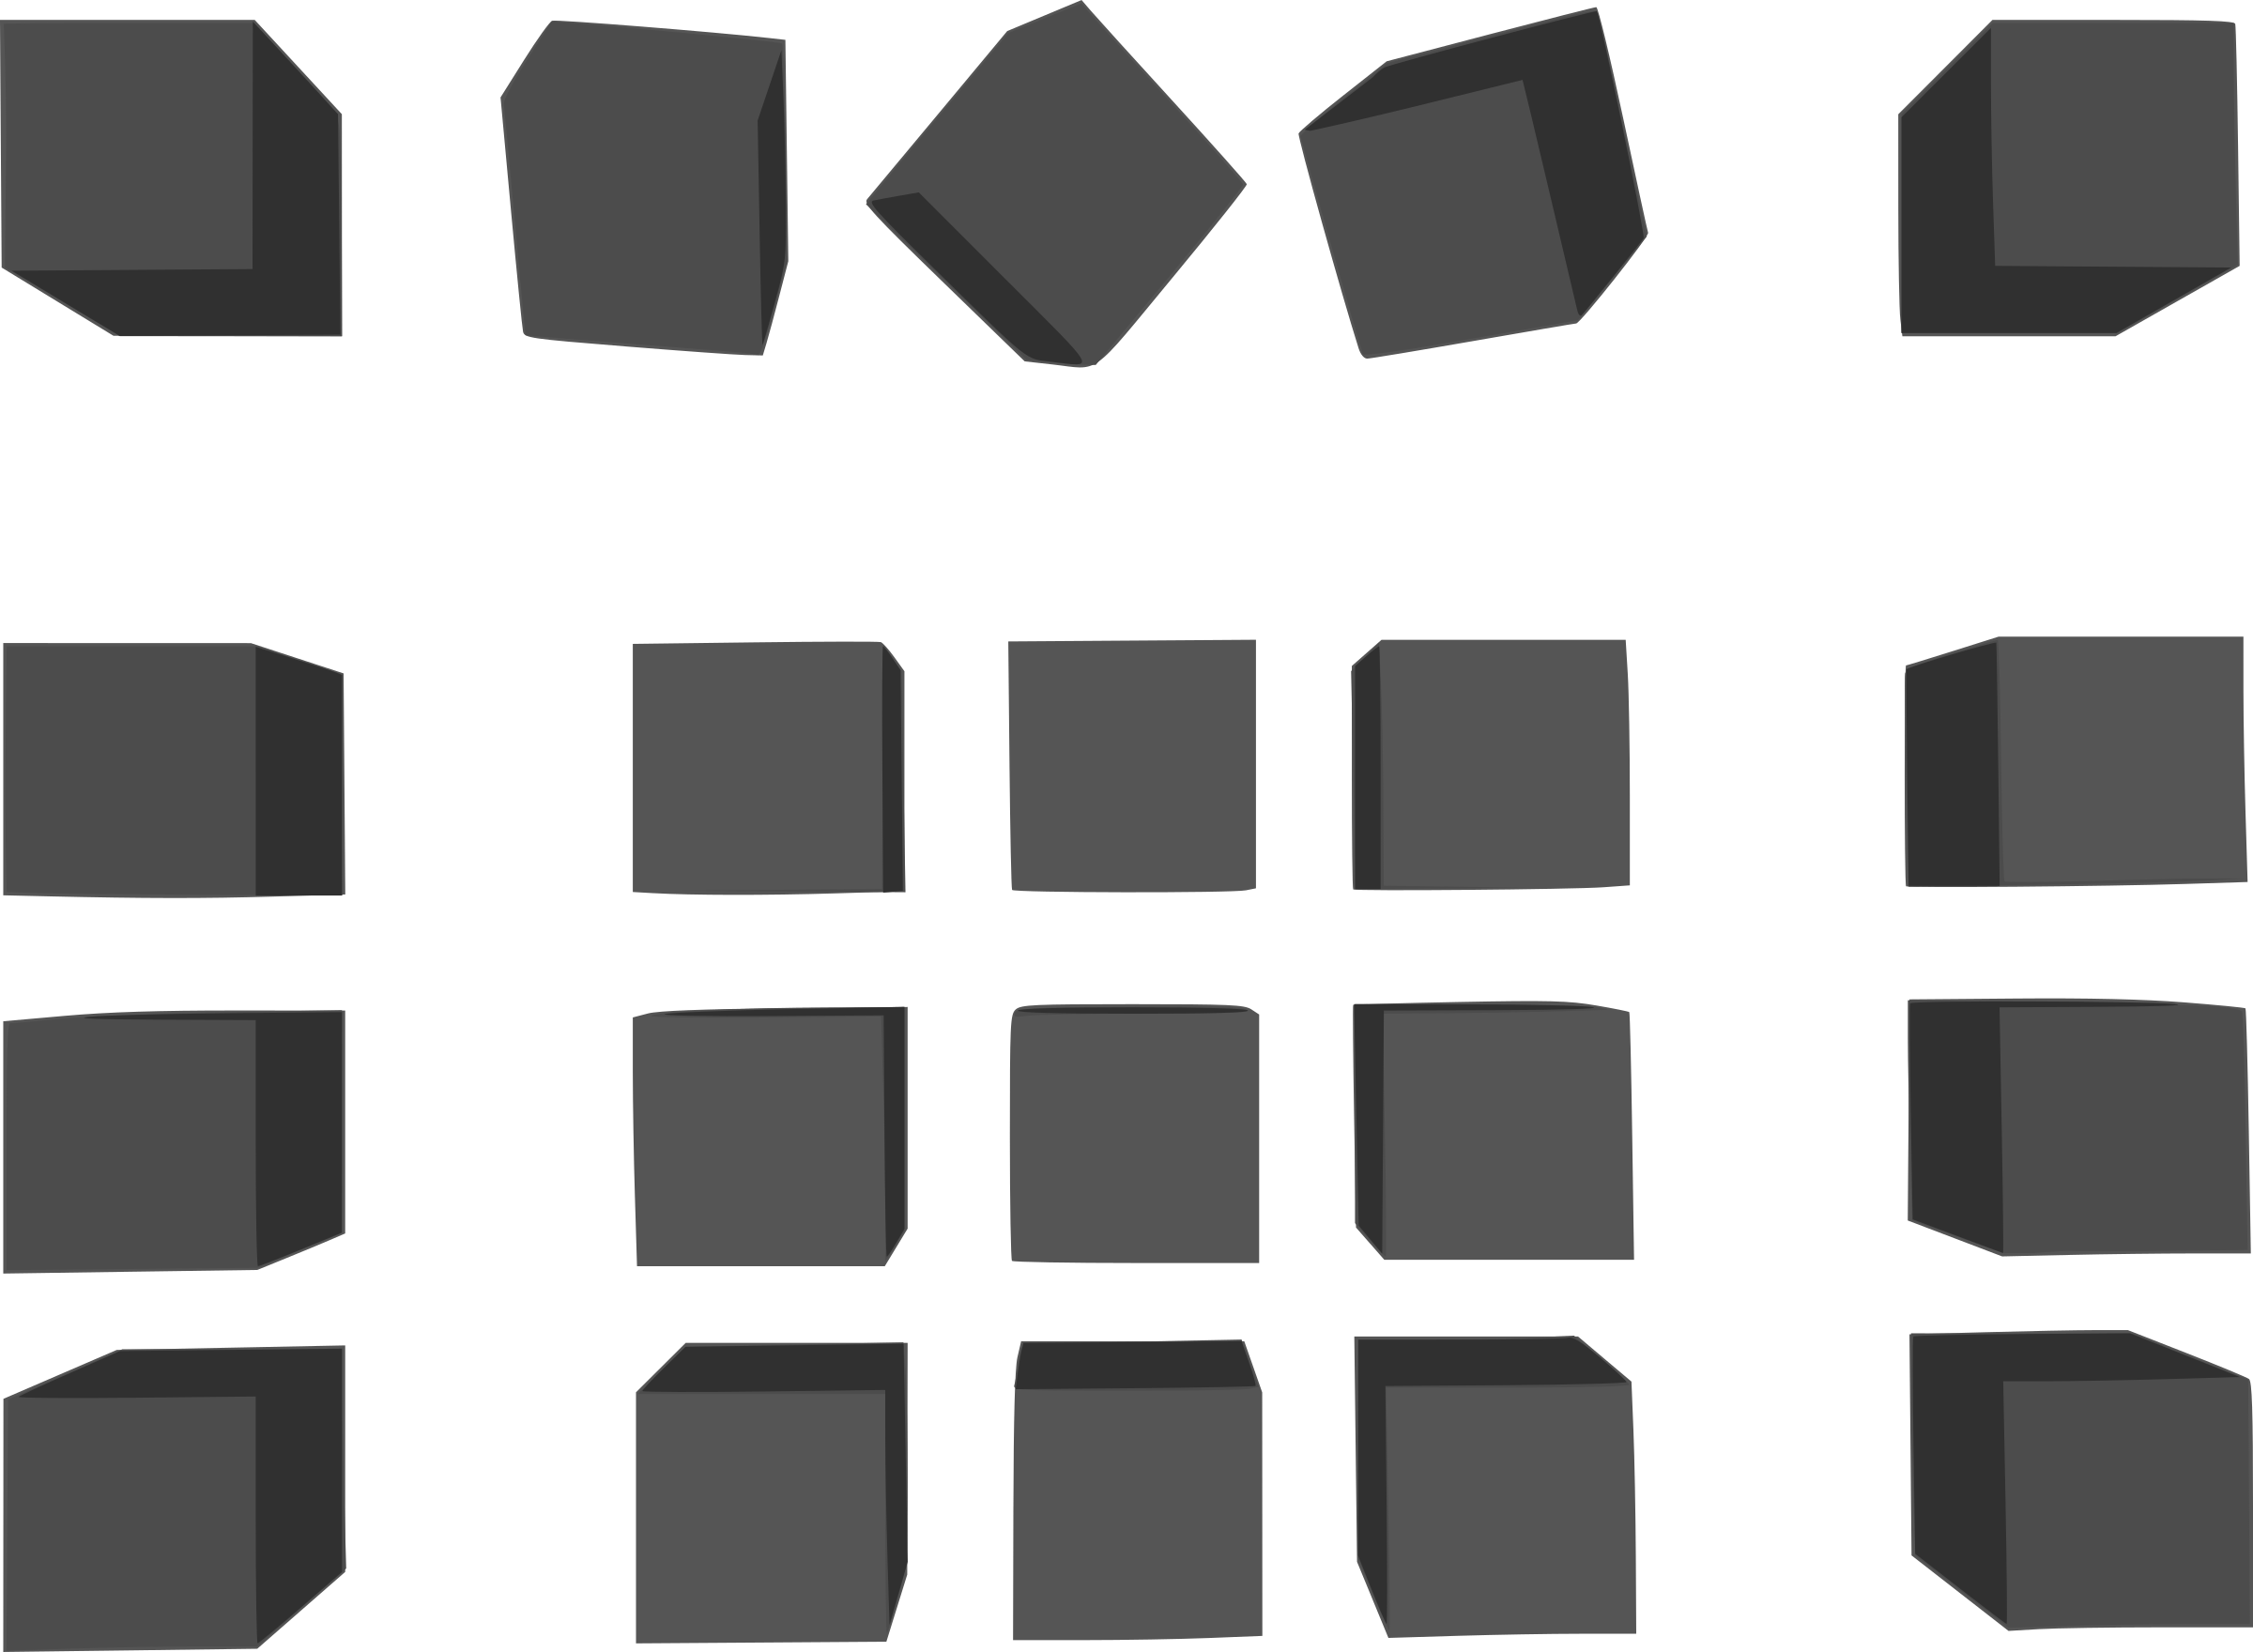 Simple Grey Cubes by dogface_jim